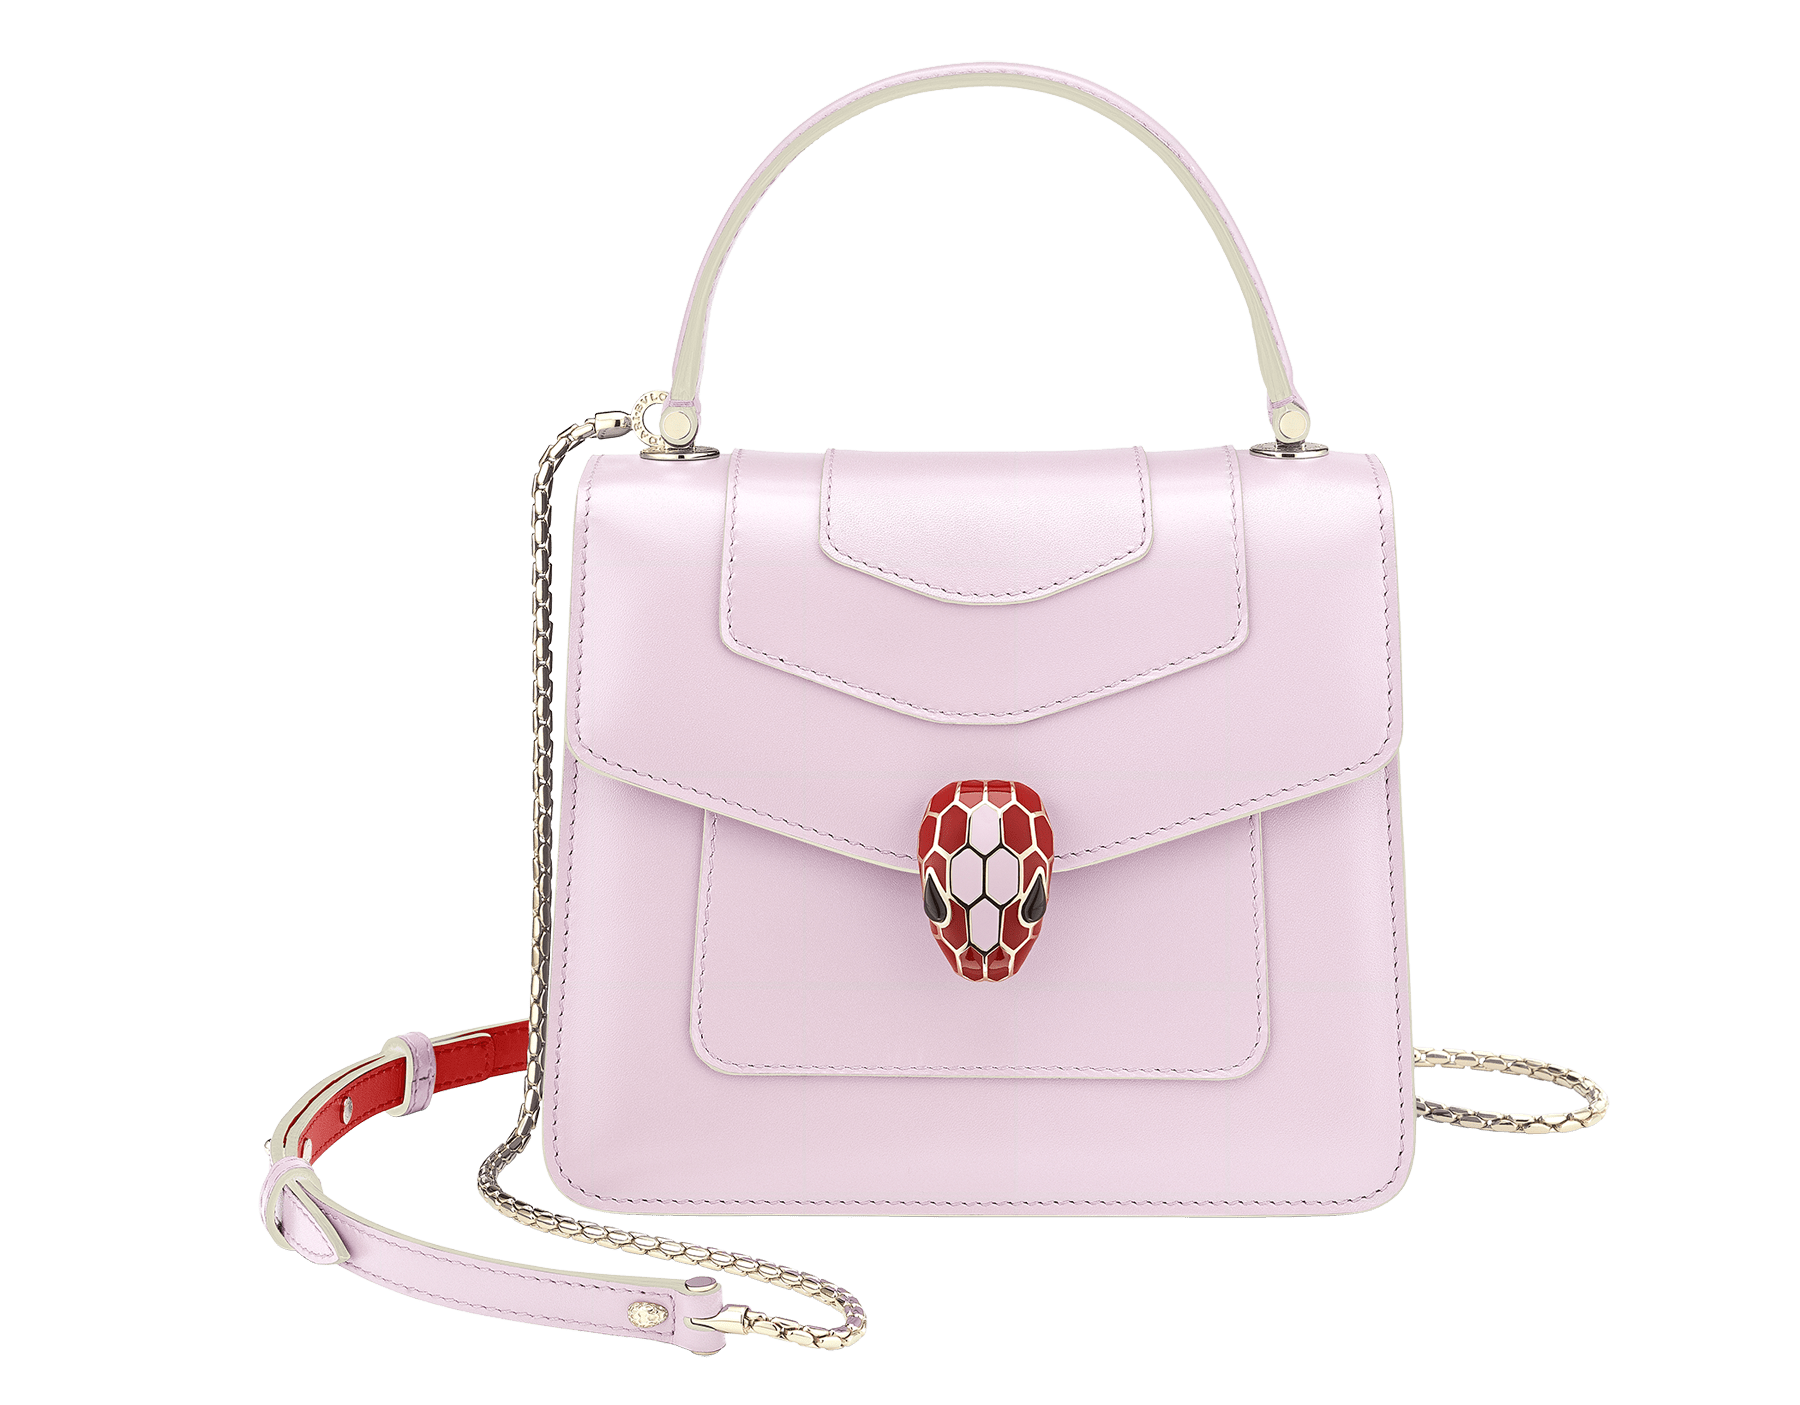 """Serpenti Forever "" crossbody bag in rosa di francia calf leather body and carmine jasper calf leather sides. Iconic snakehead closure in light gold plated brass enriched with carmine jasper and rosa di francia enamel and black onyx eyes. 289221 image 1"